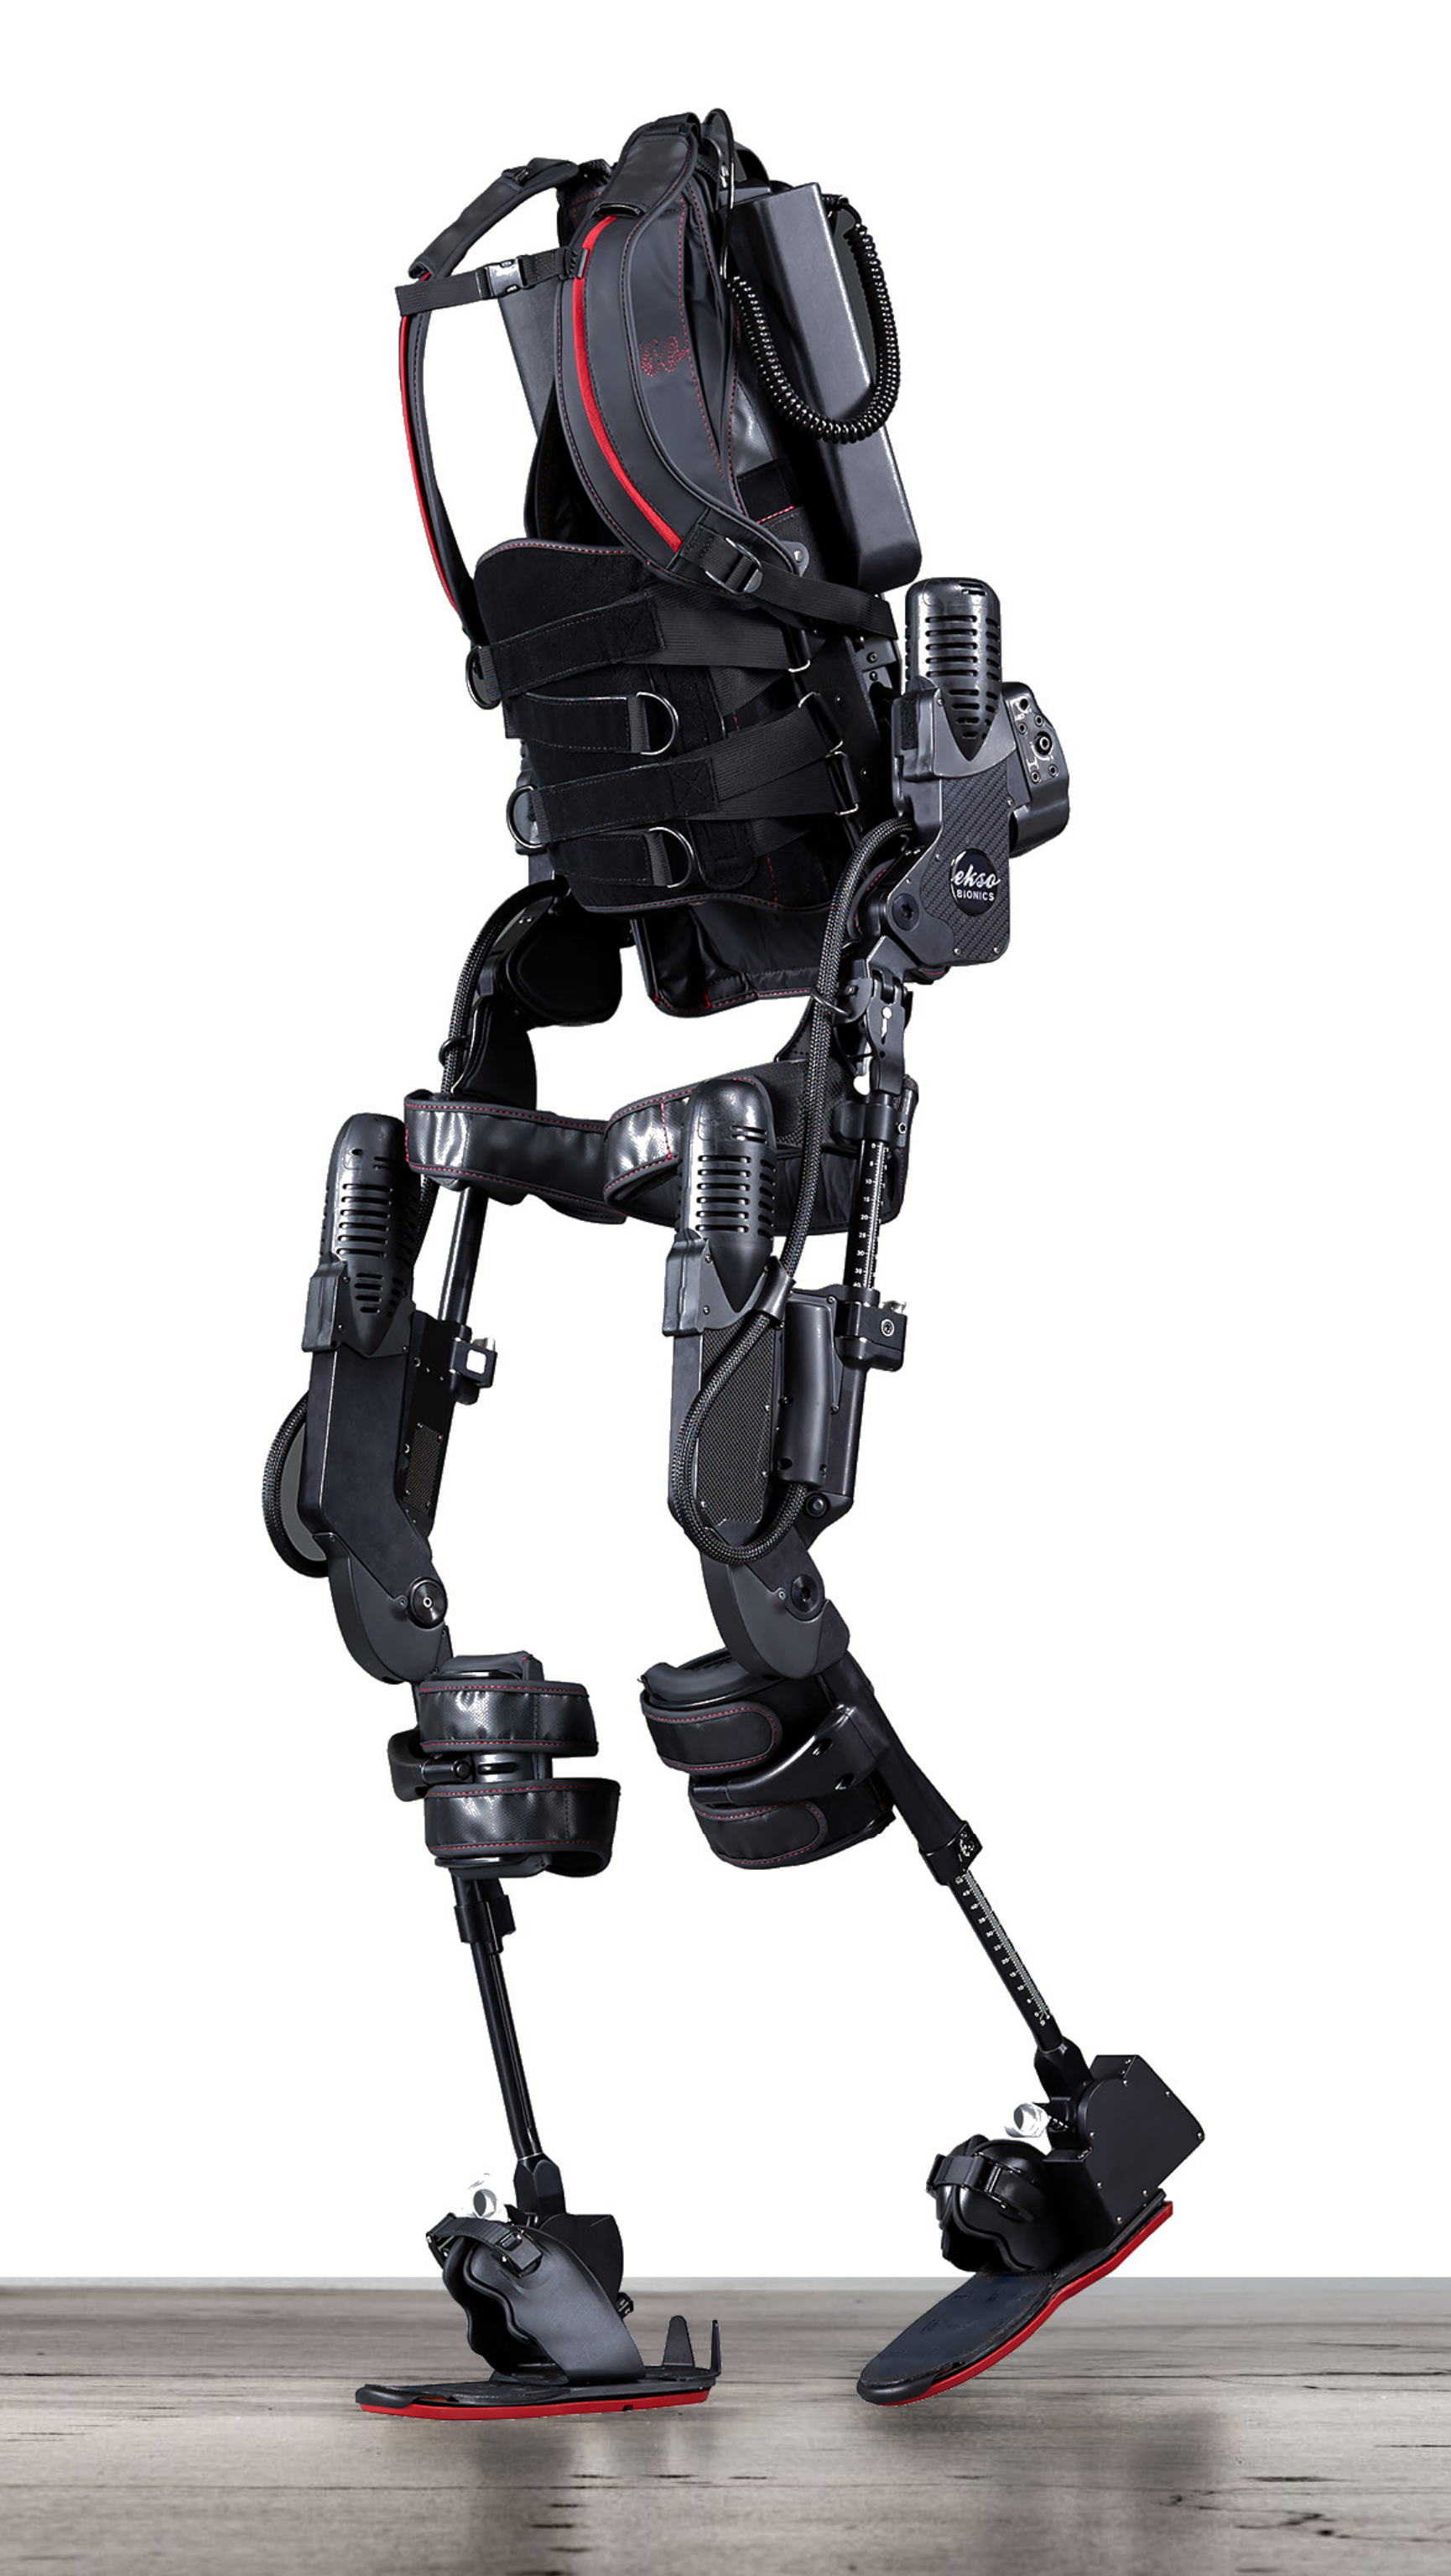 Ekso Bionics' Ekso GT medical exoskeleton